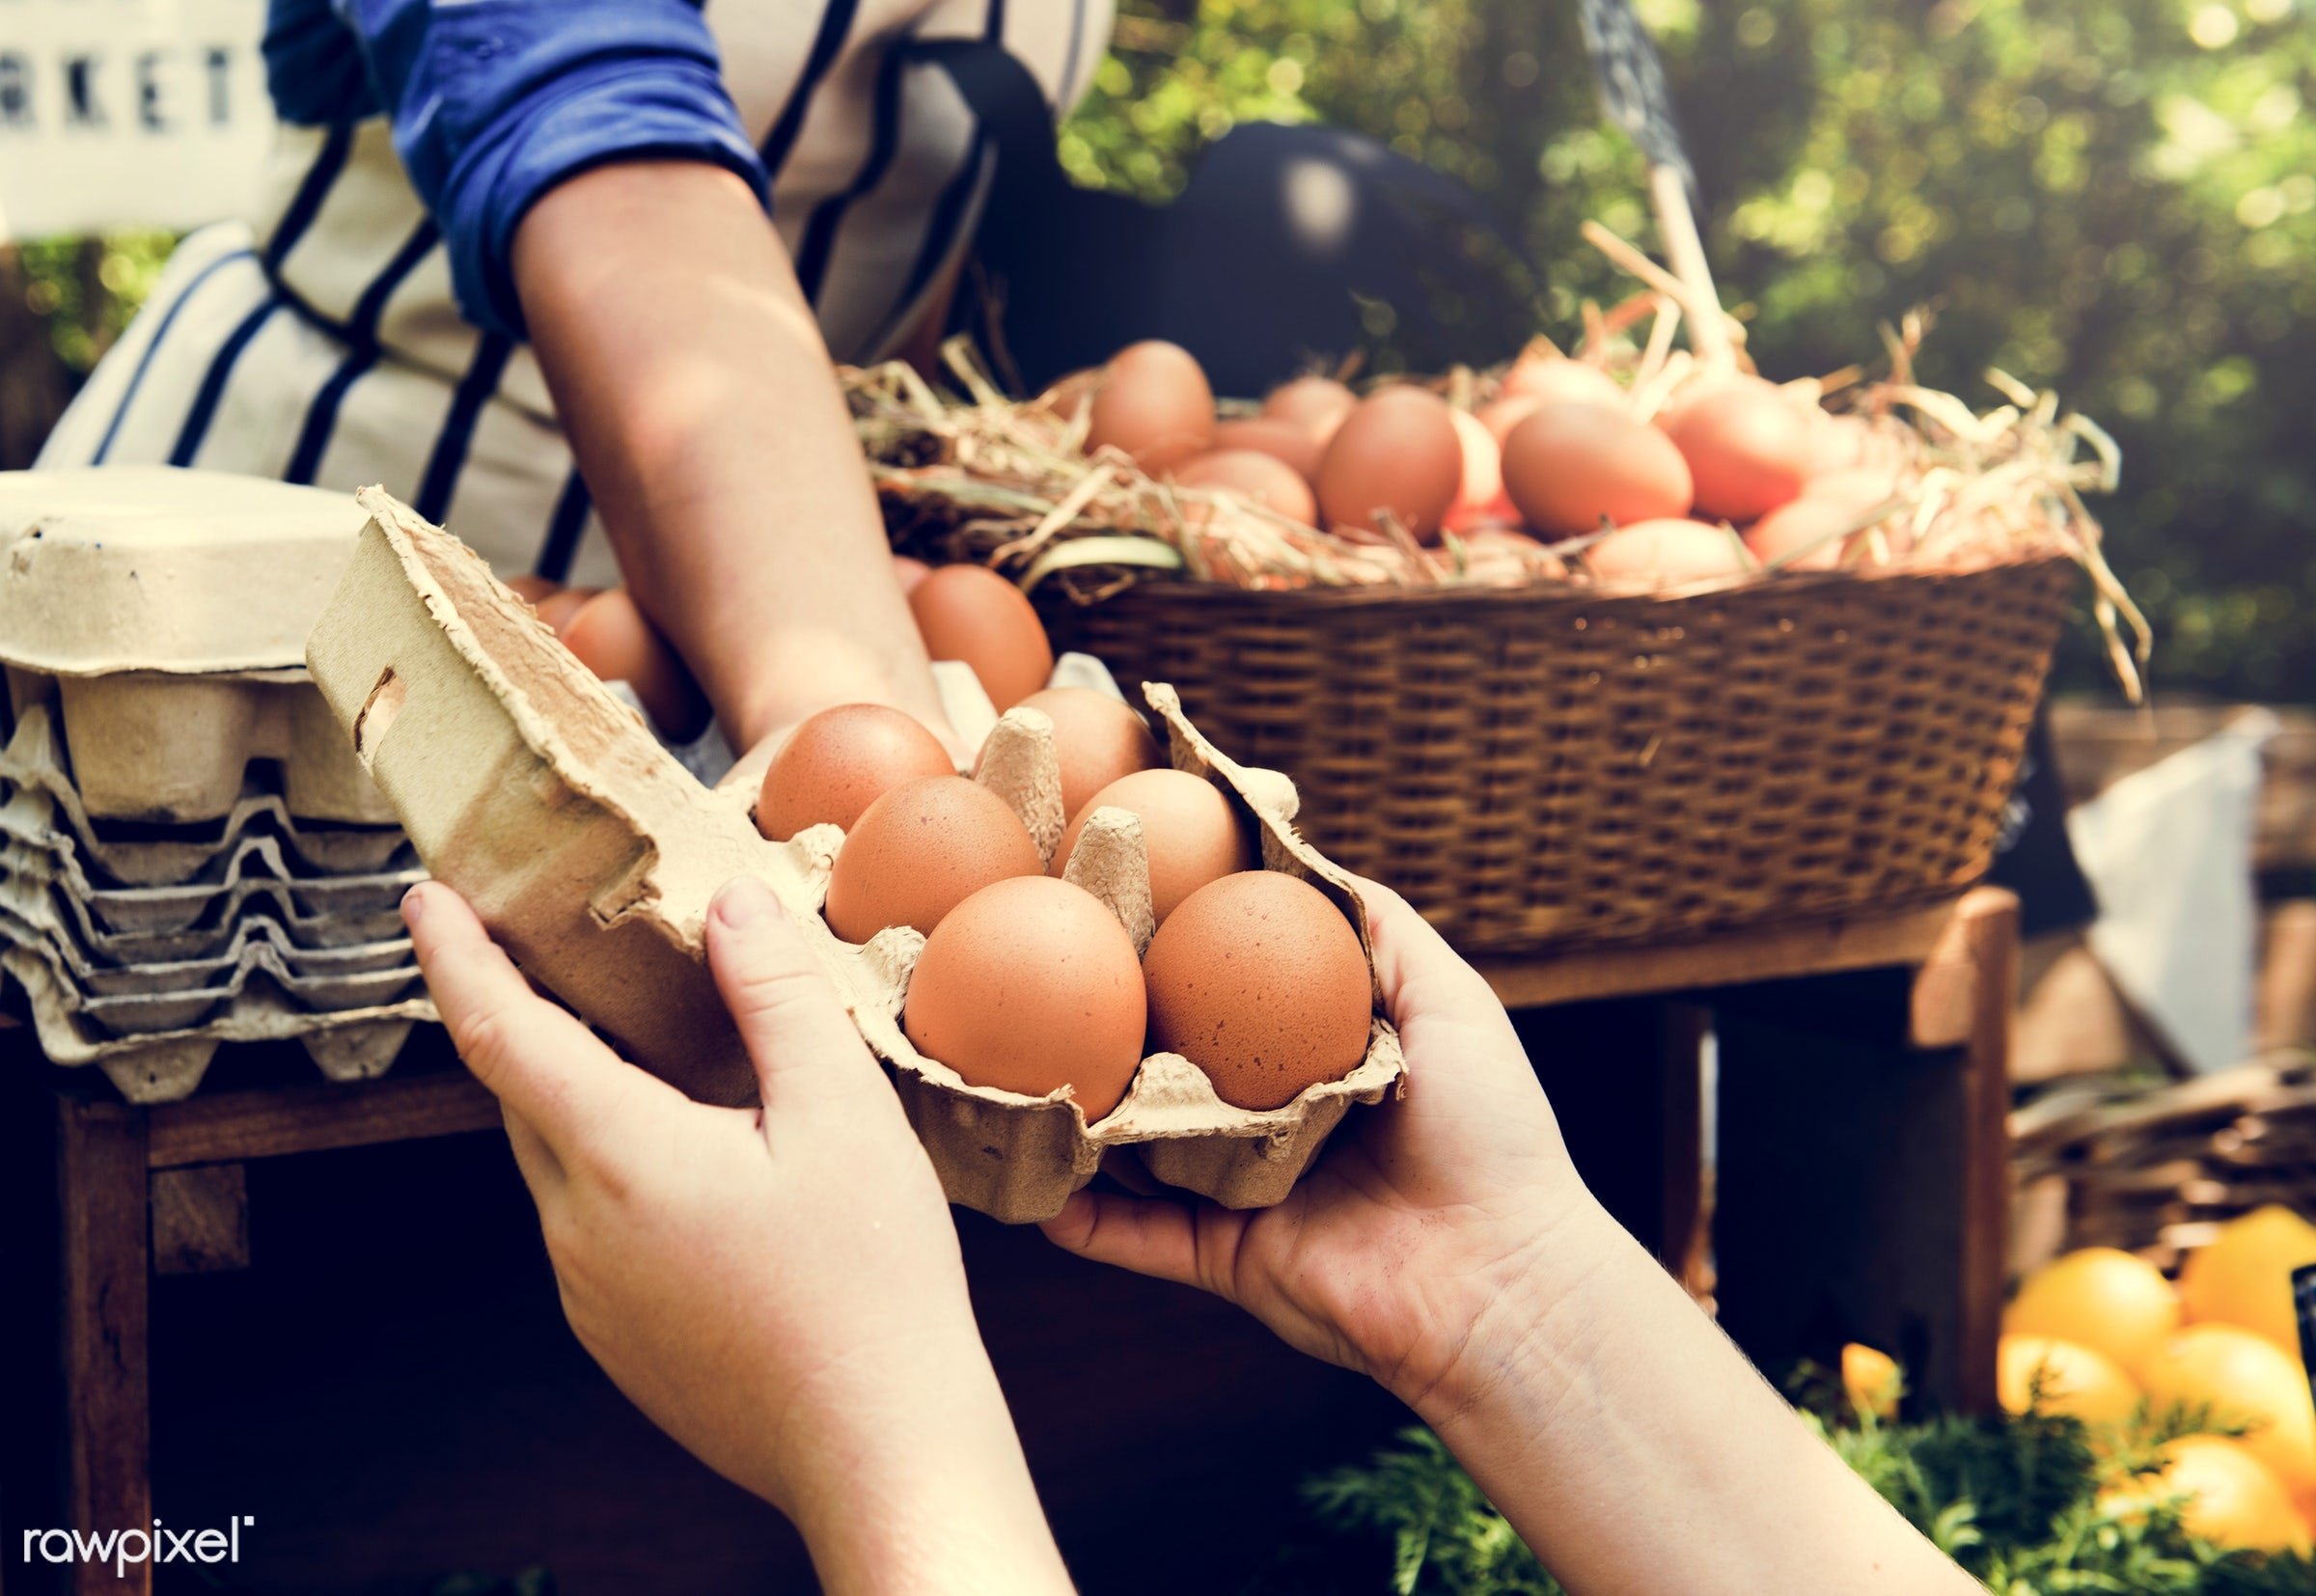 shop, uncooked, cuisine, poultry, round, rooster, house, homemade, farmer, woman, protein, ingredient, oval, agriculturalist...